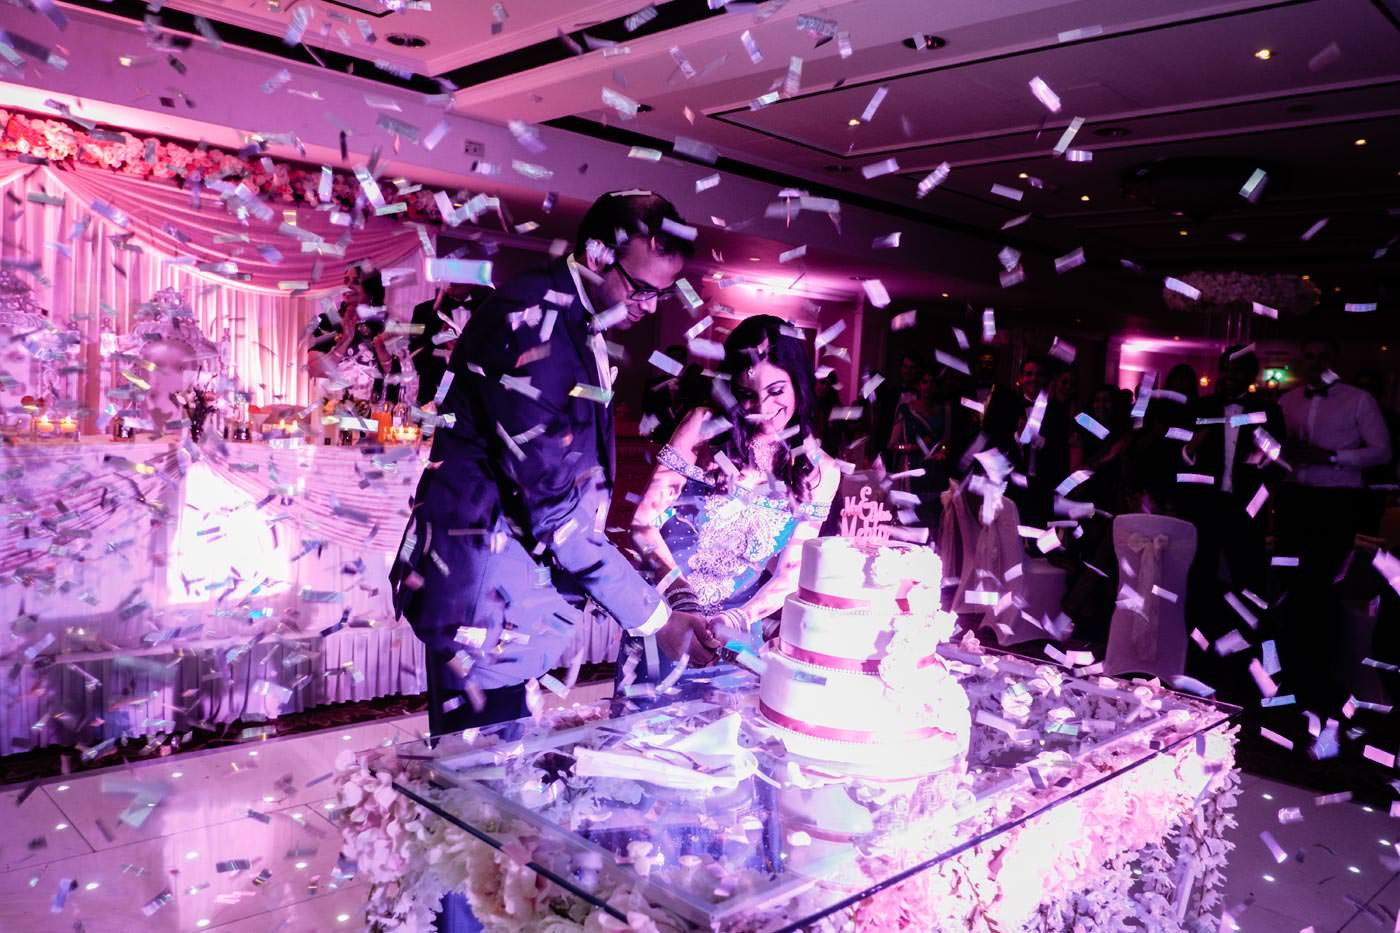 Indian brid eand groom cutting cake with confetti from confetti cannon